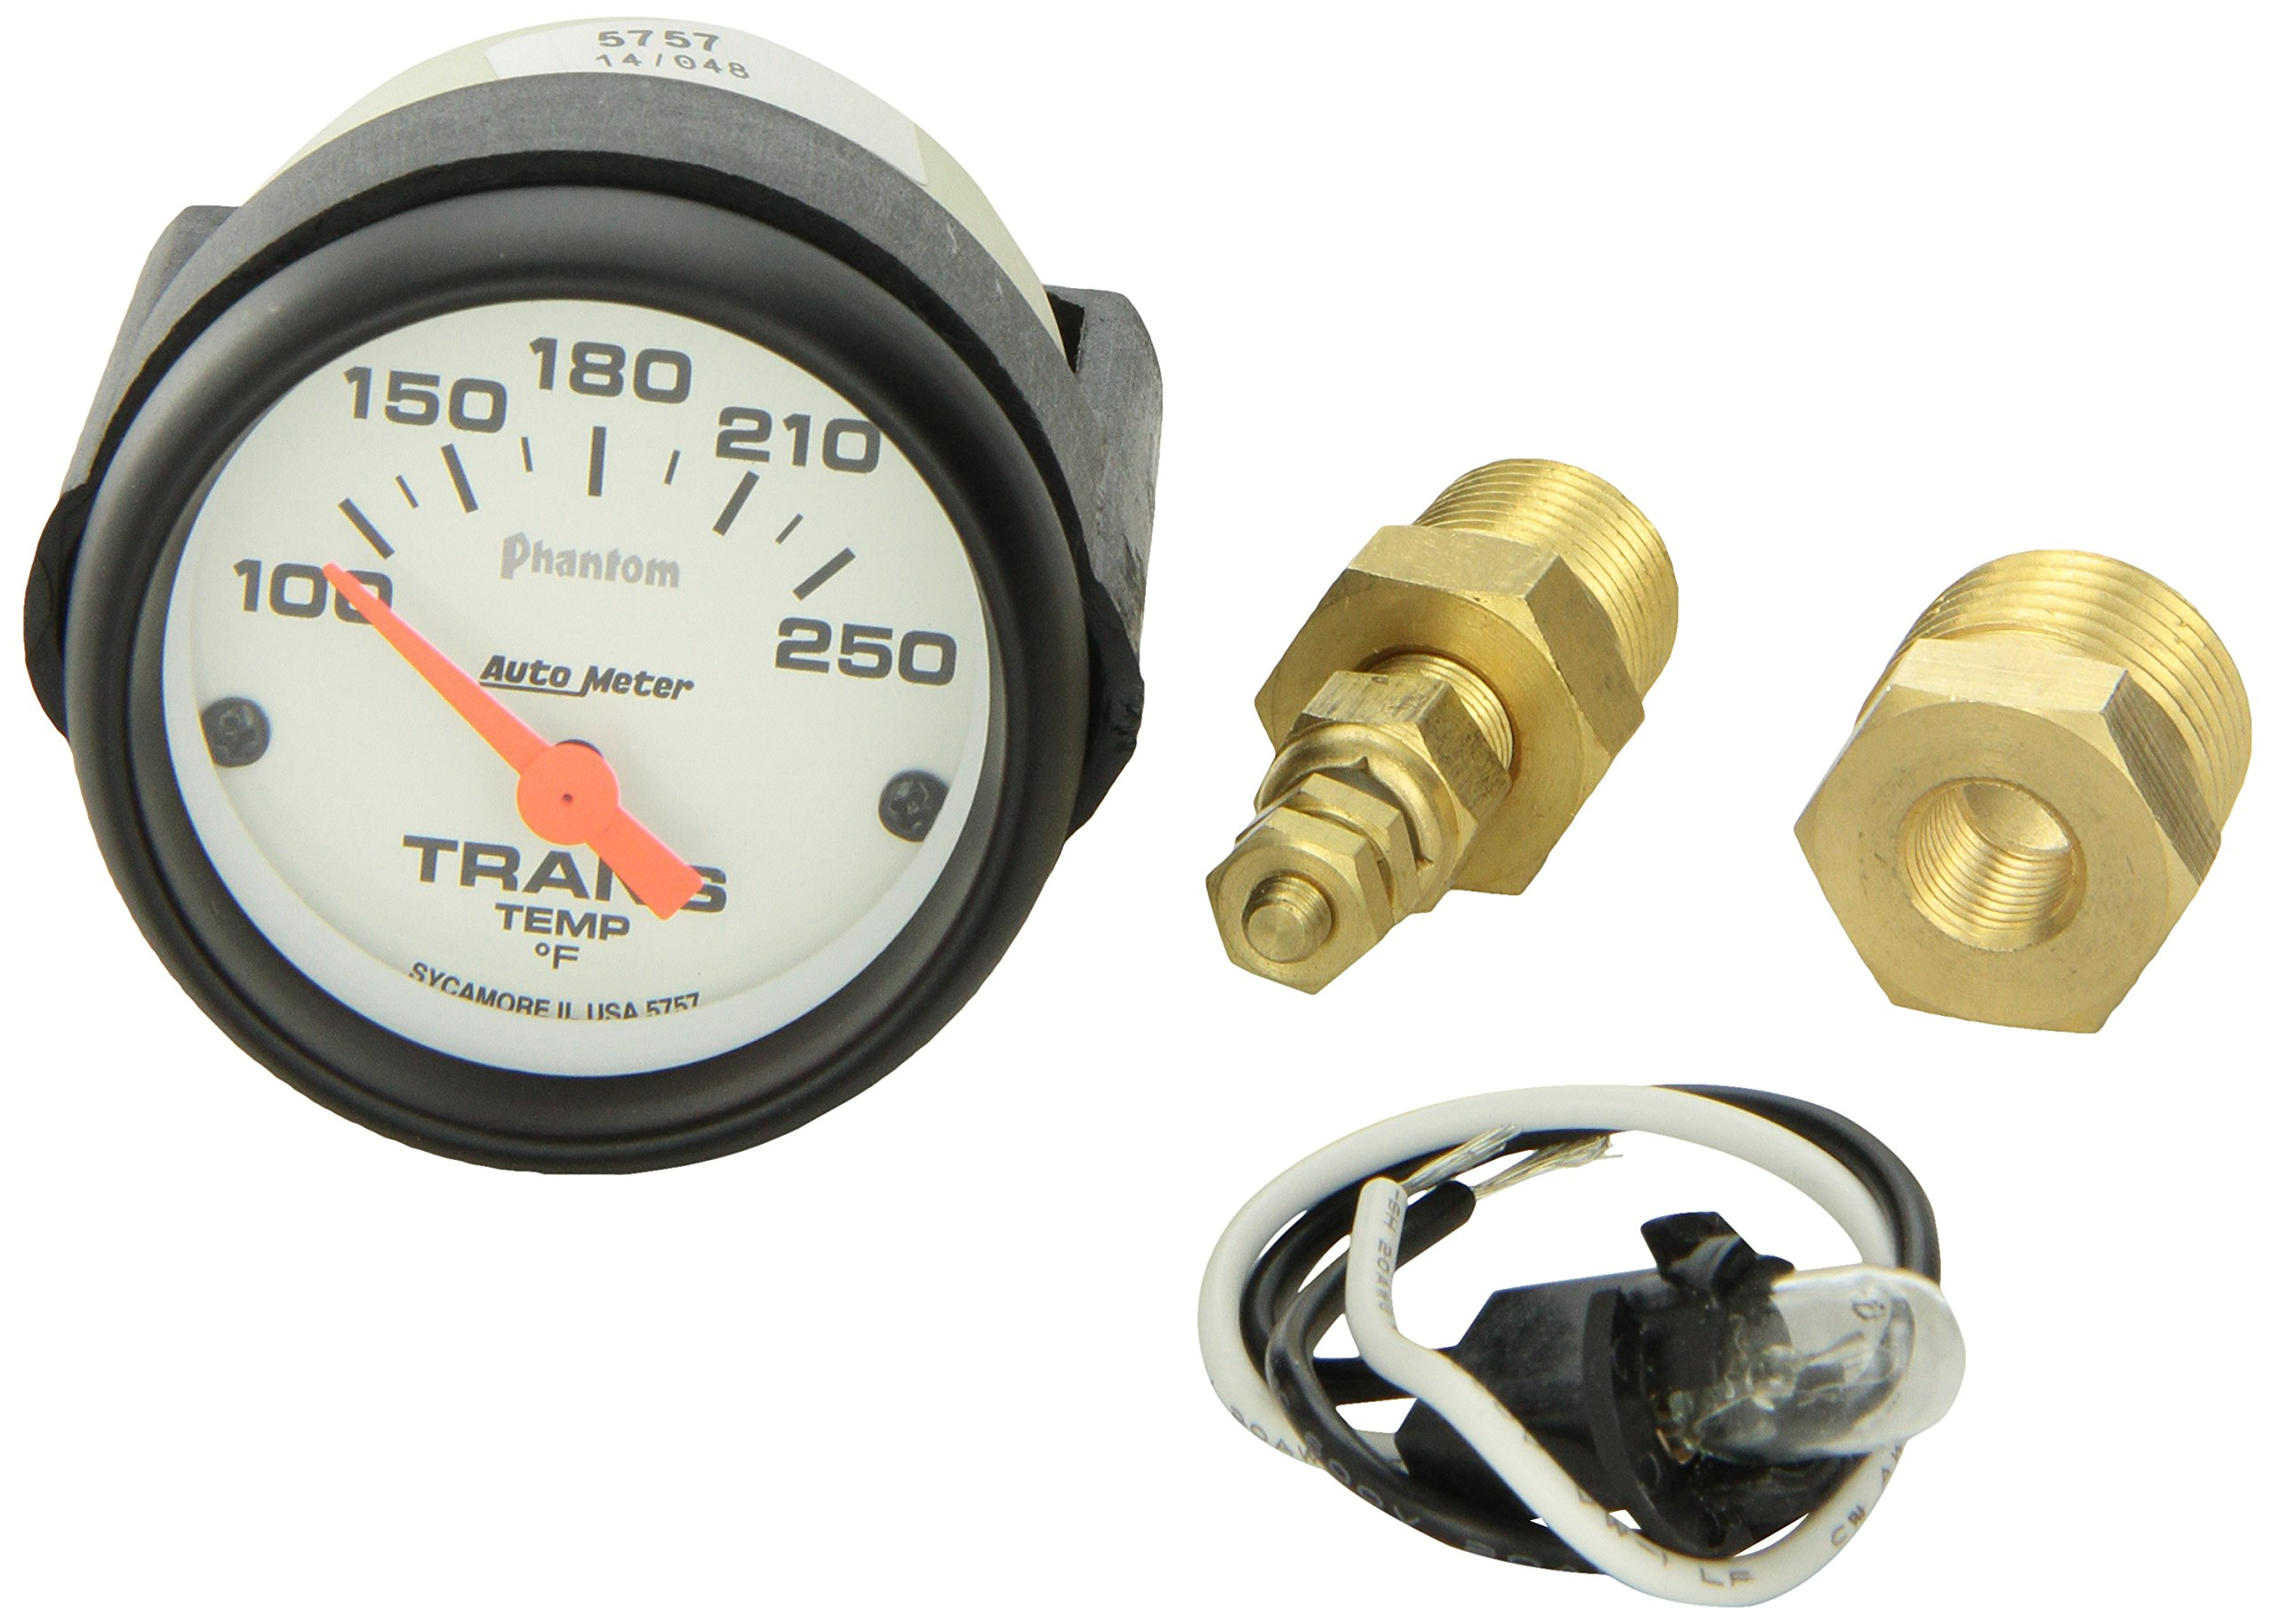 Auto Meter 5757 Electric Transmission Temperature Gauge by Auto Meter